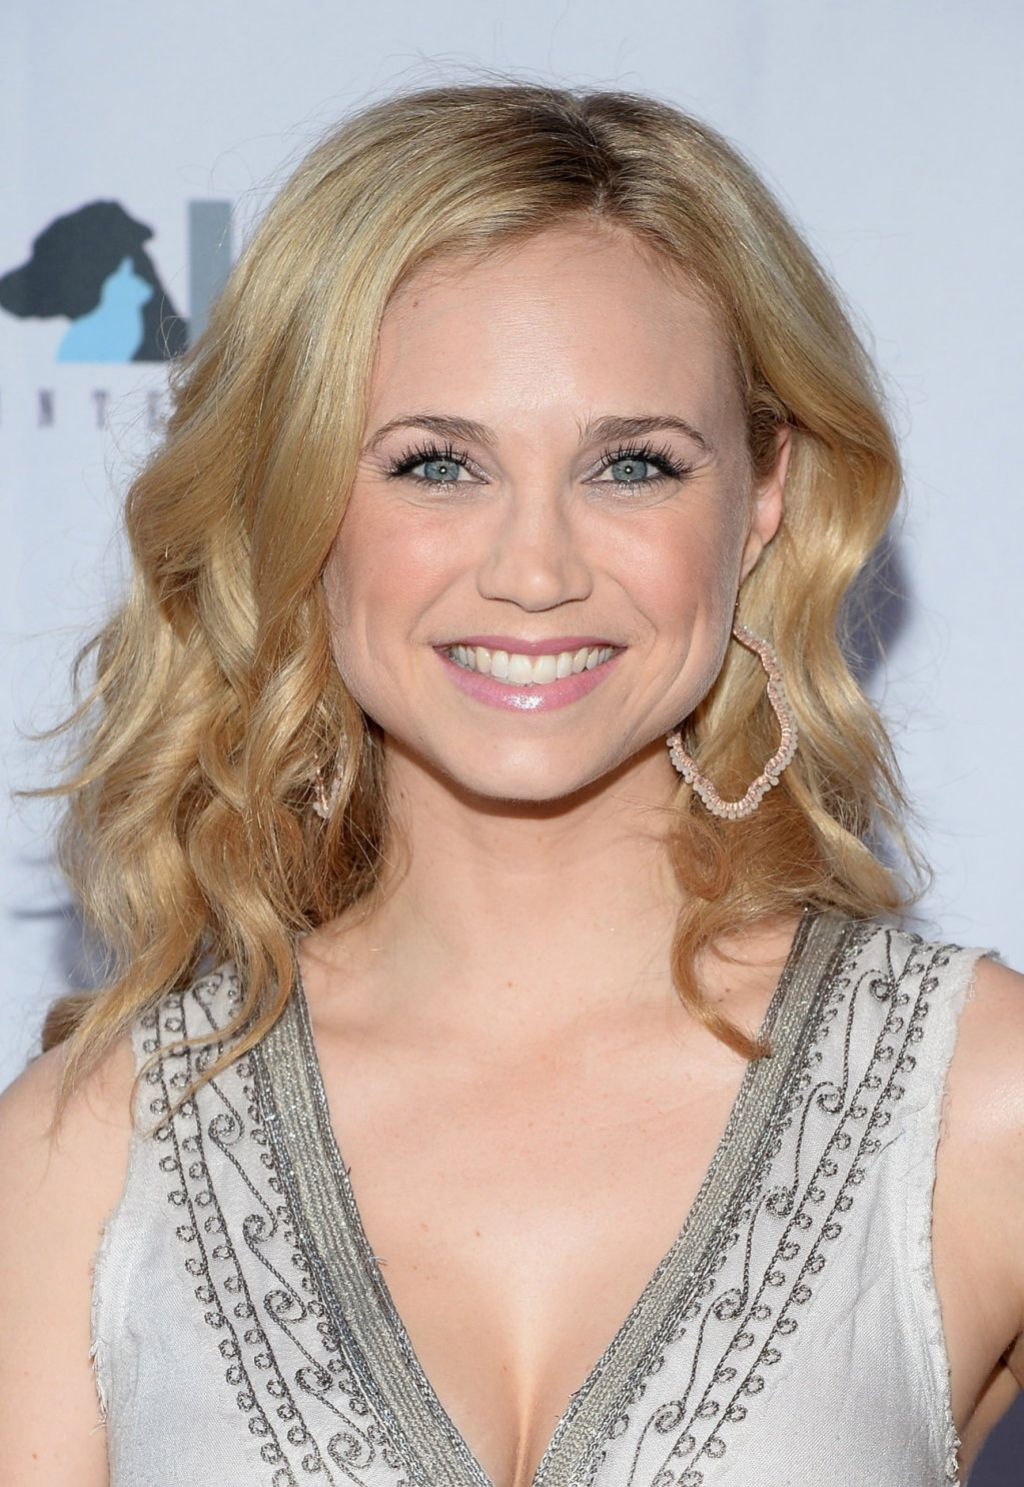 Fiona Gubelmann - More Than a Cone art Auction & Campaign Launch - Los Angeles, June 2014